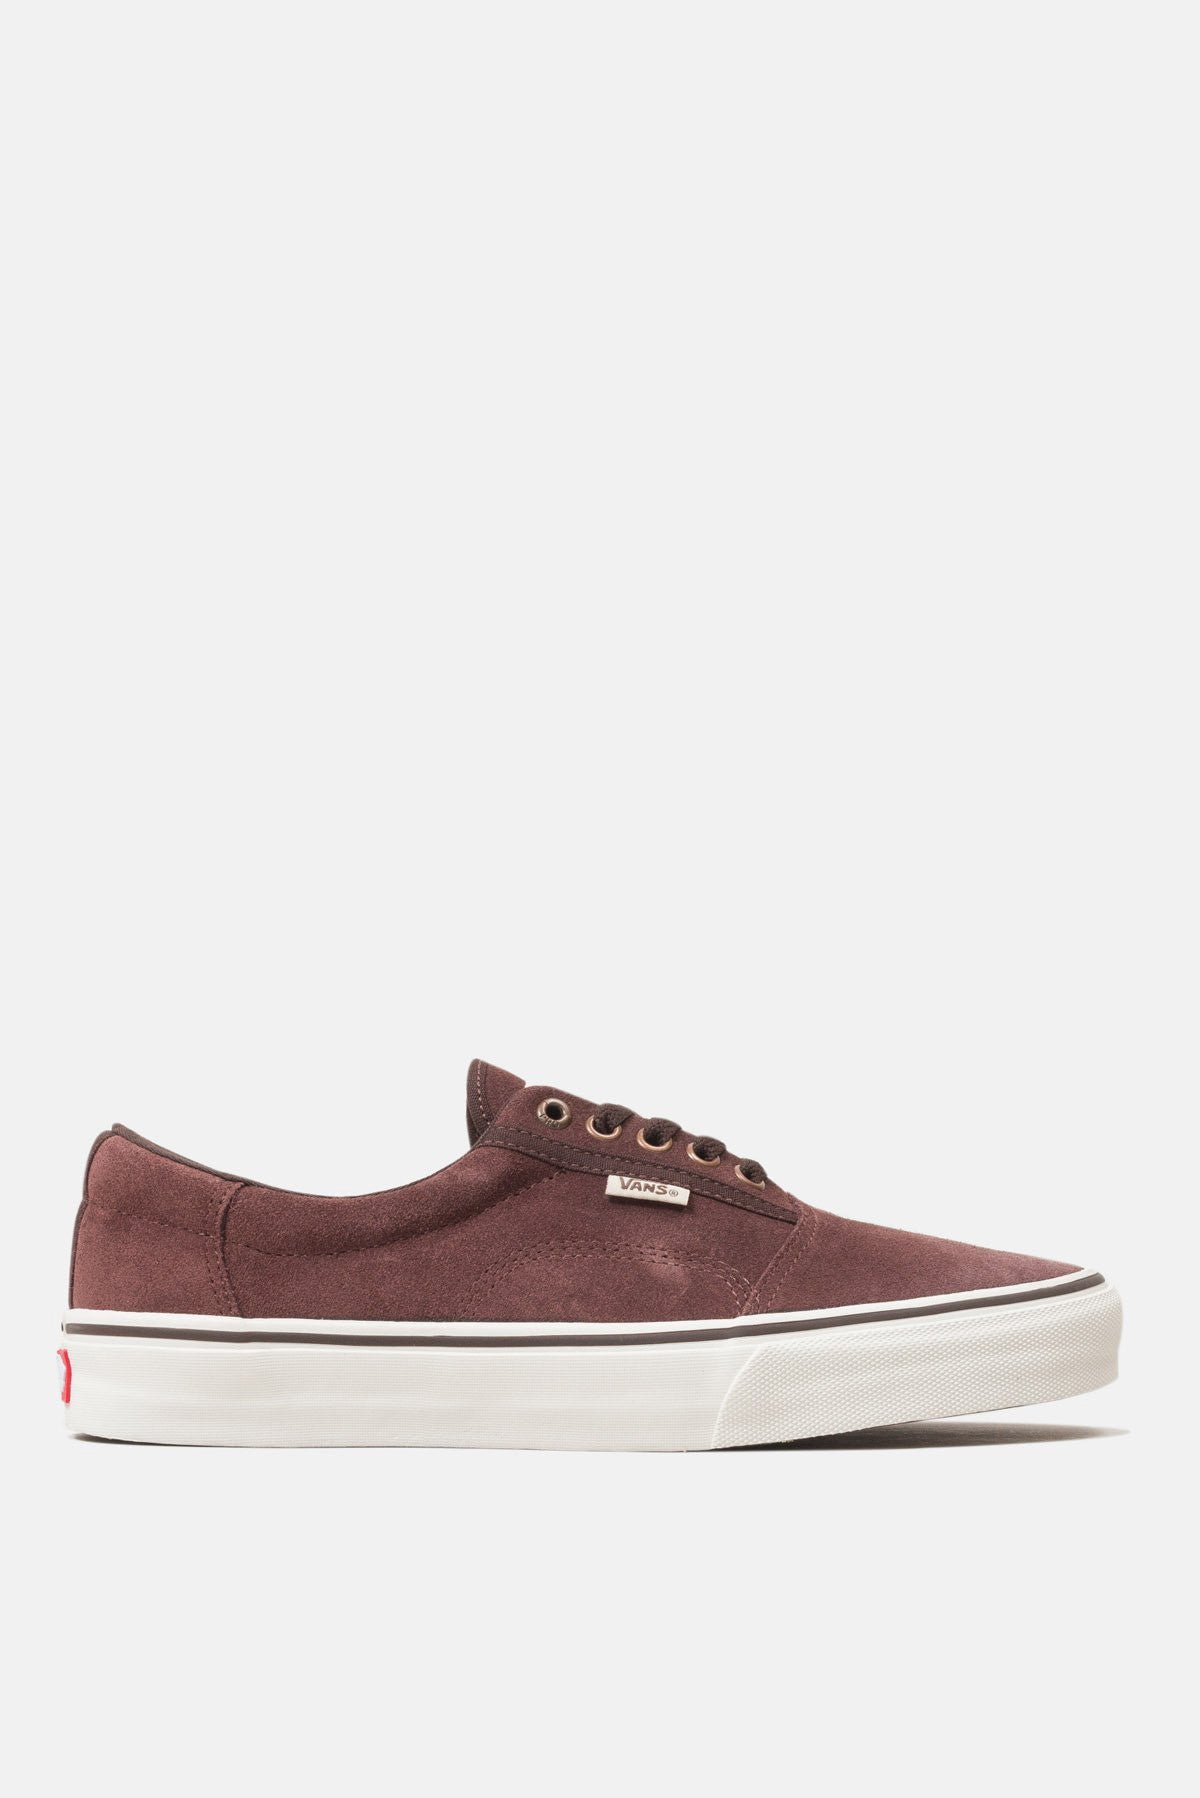 Chaussures Vans Mn Rowley Solos Disponible Sur Priory